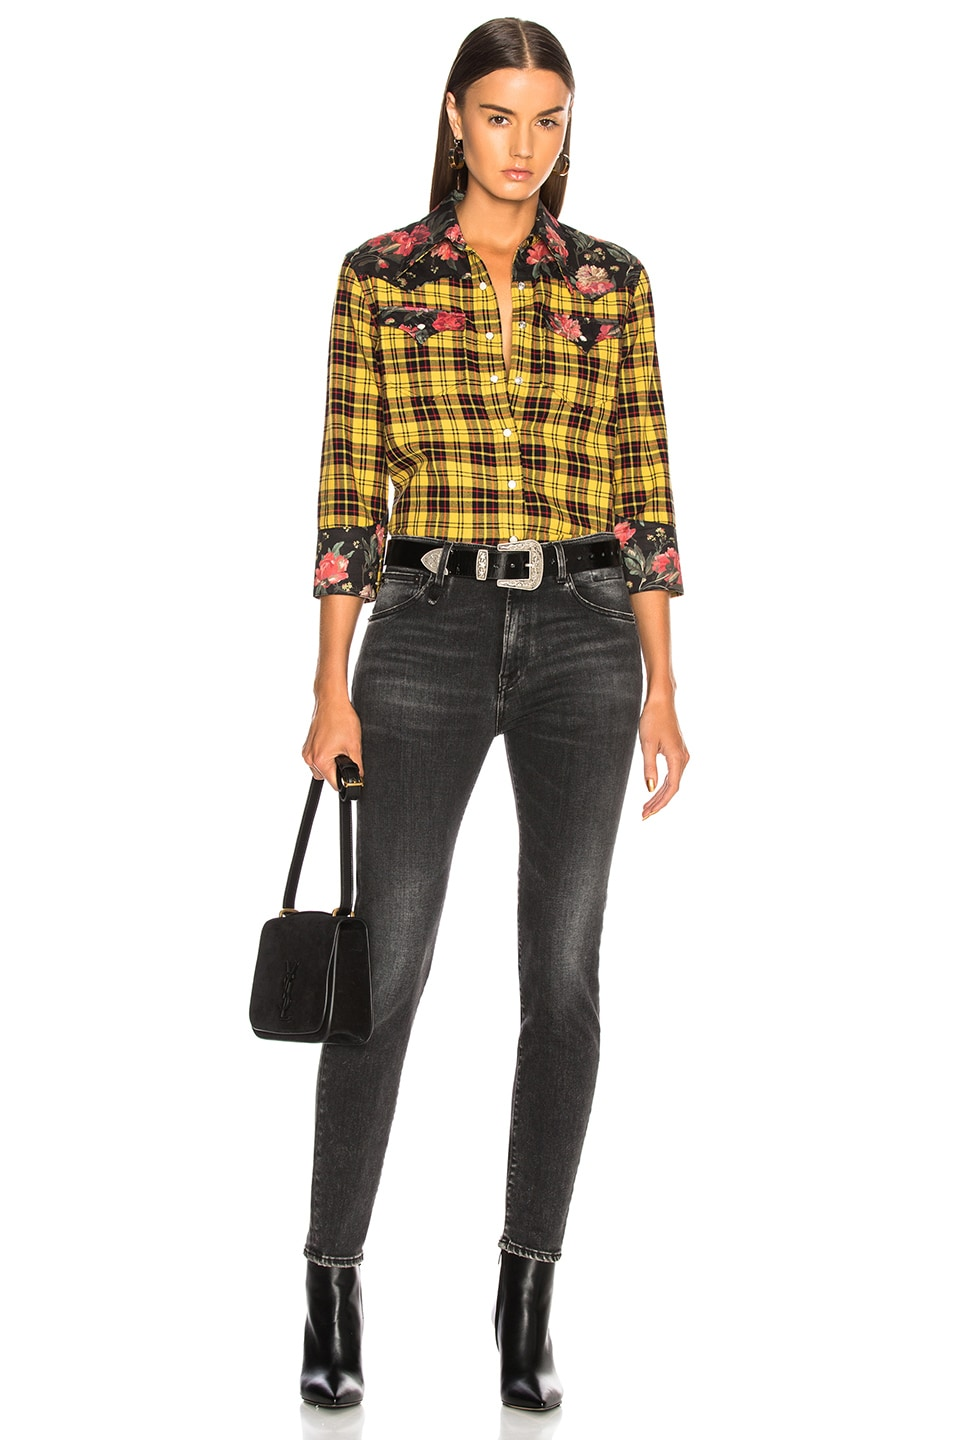 Image 4 of R13 Exaggerated Collar Cowboy Shirt in Yellow & Black Floral